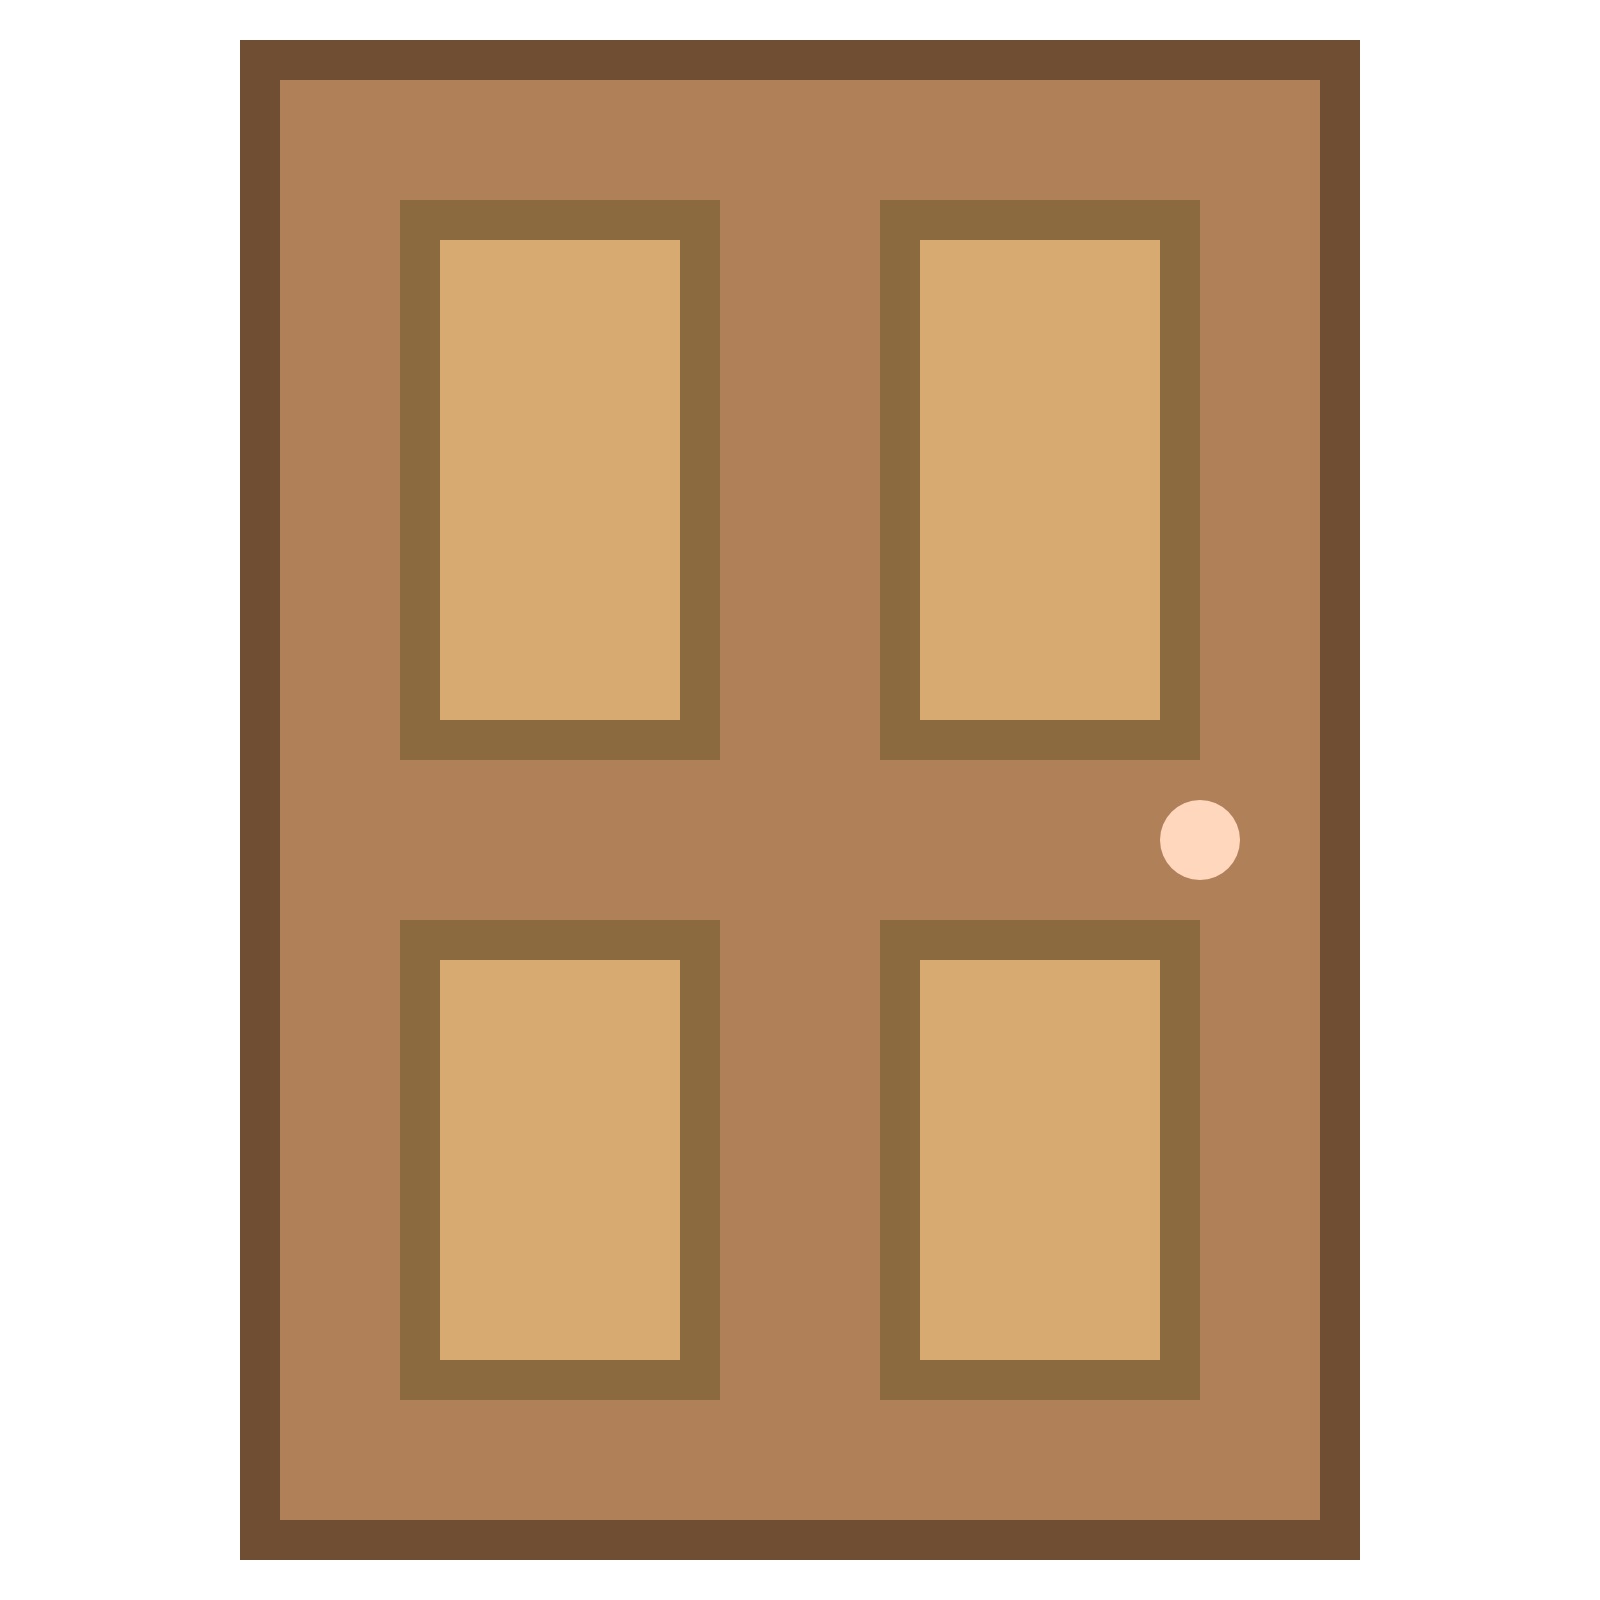 Download free transparent png image. door icon .  sc 1 st  Pezcame.Com & Door Icon Png u0026 Soylent Red Door 8 Icon